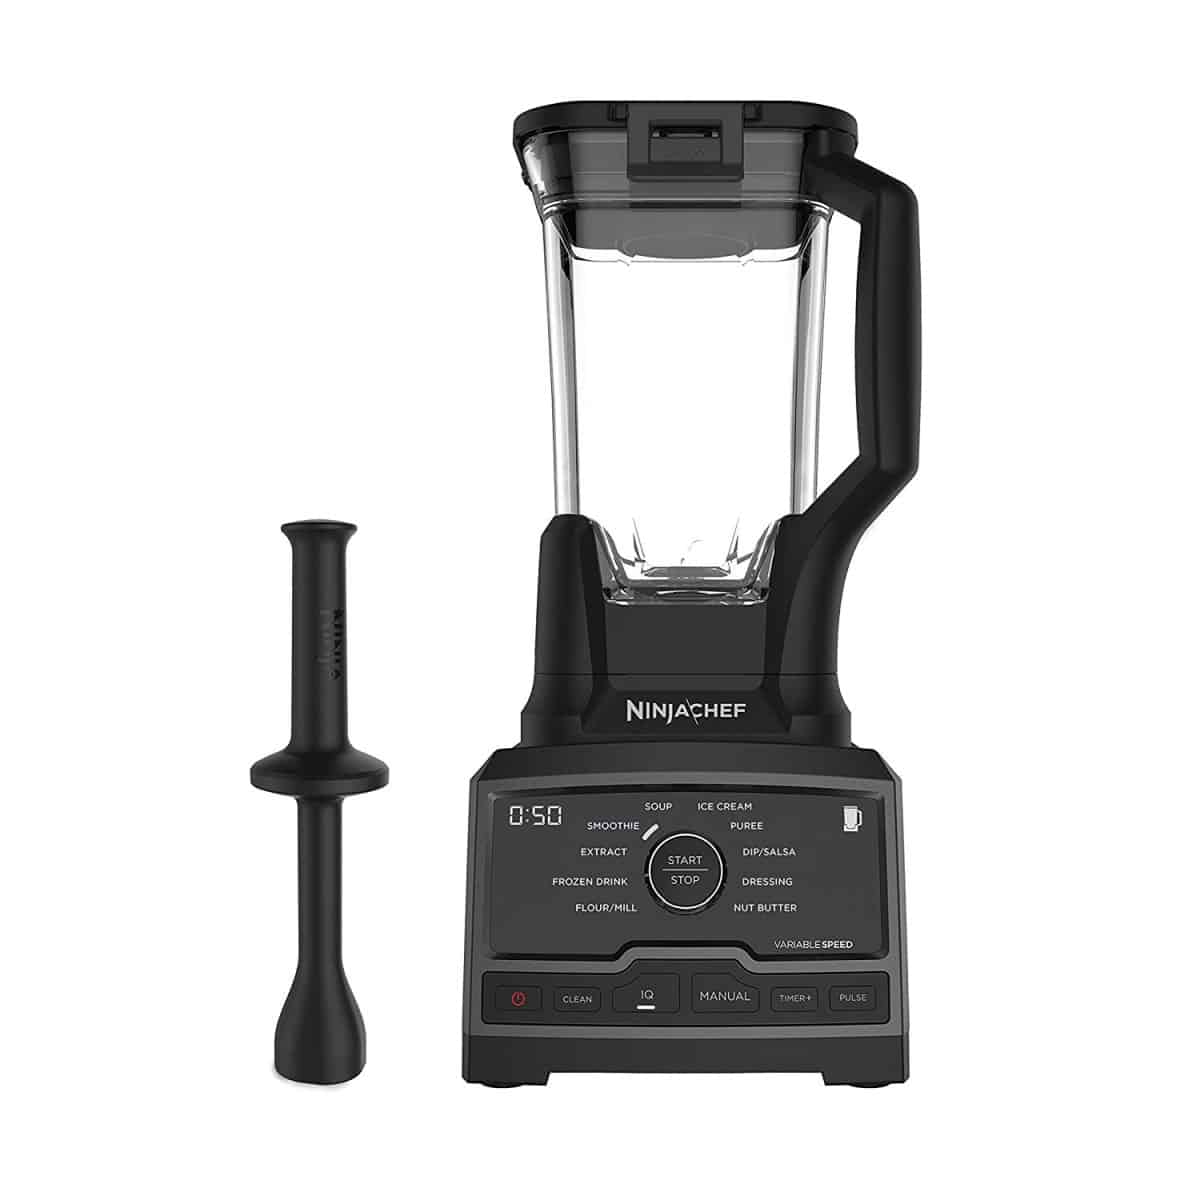 Ninja Chef Countertop Blender | Hey Alexa, Get These 21 Kitchen Appliances On Amazon